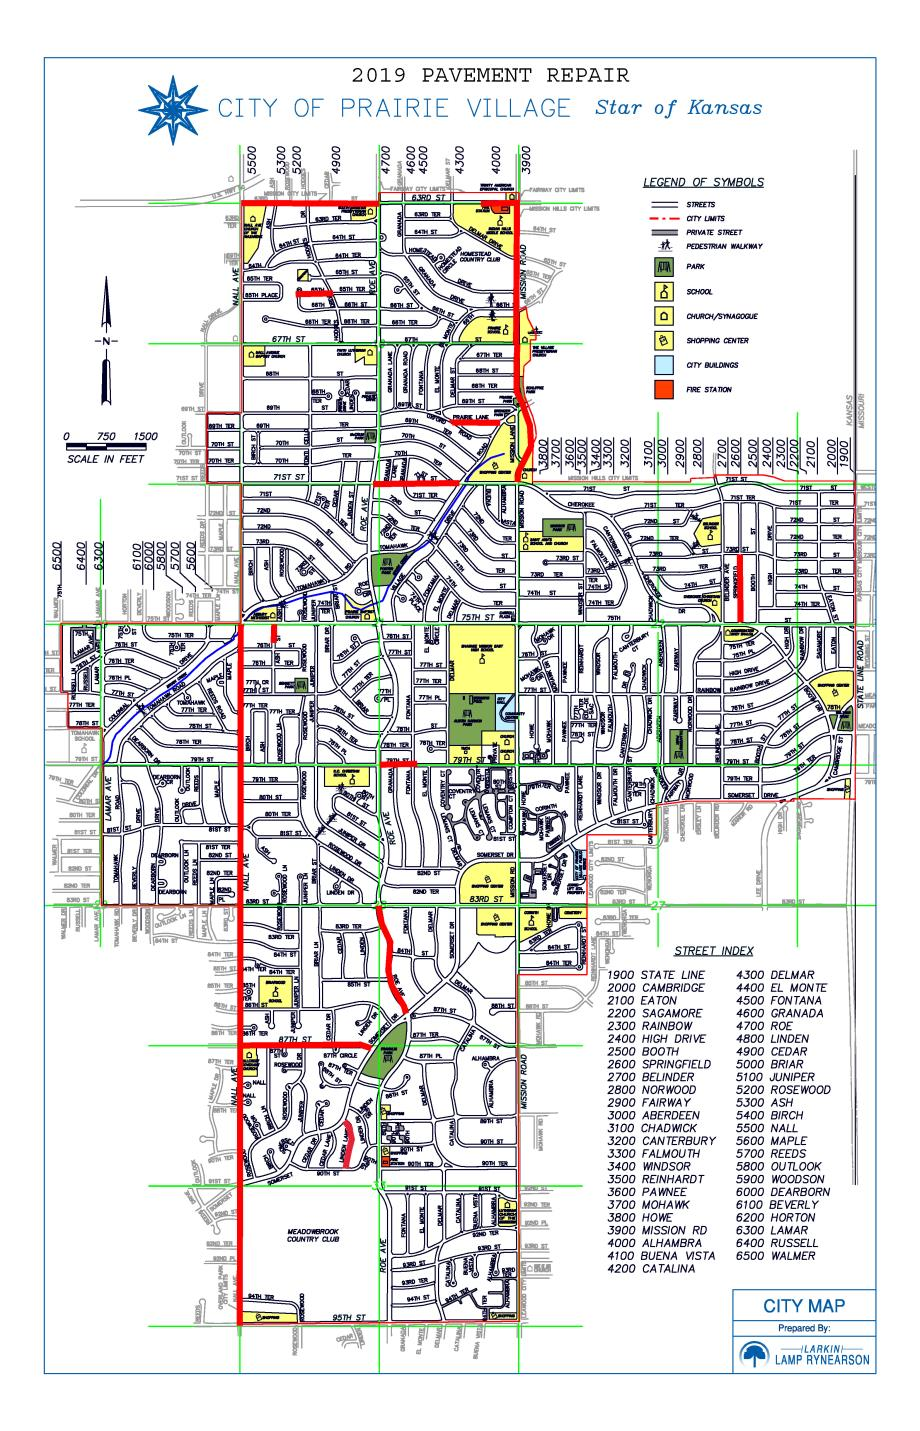 Construction Projects - 2019 | City of Prairie Village